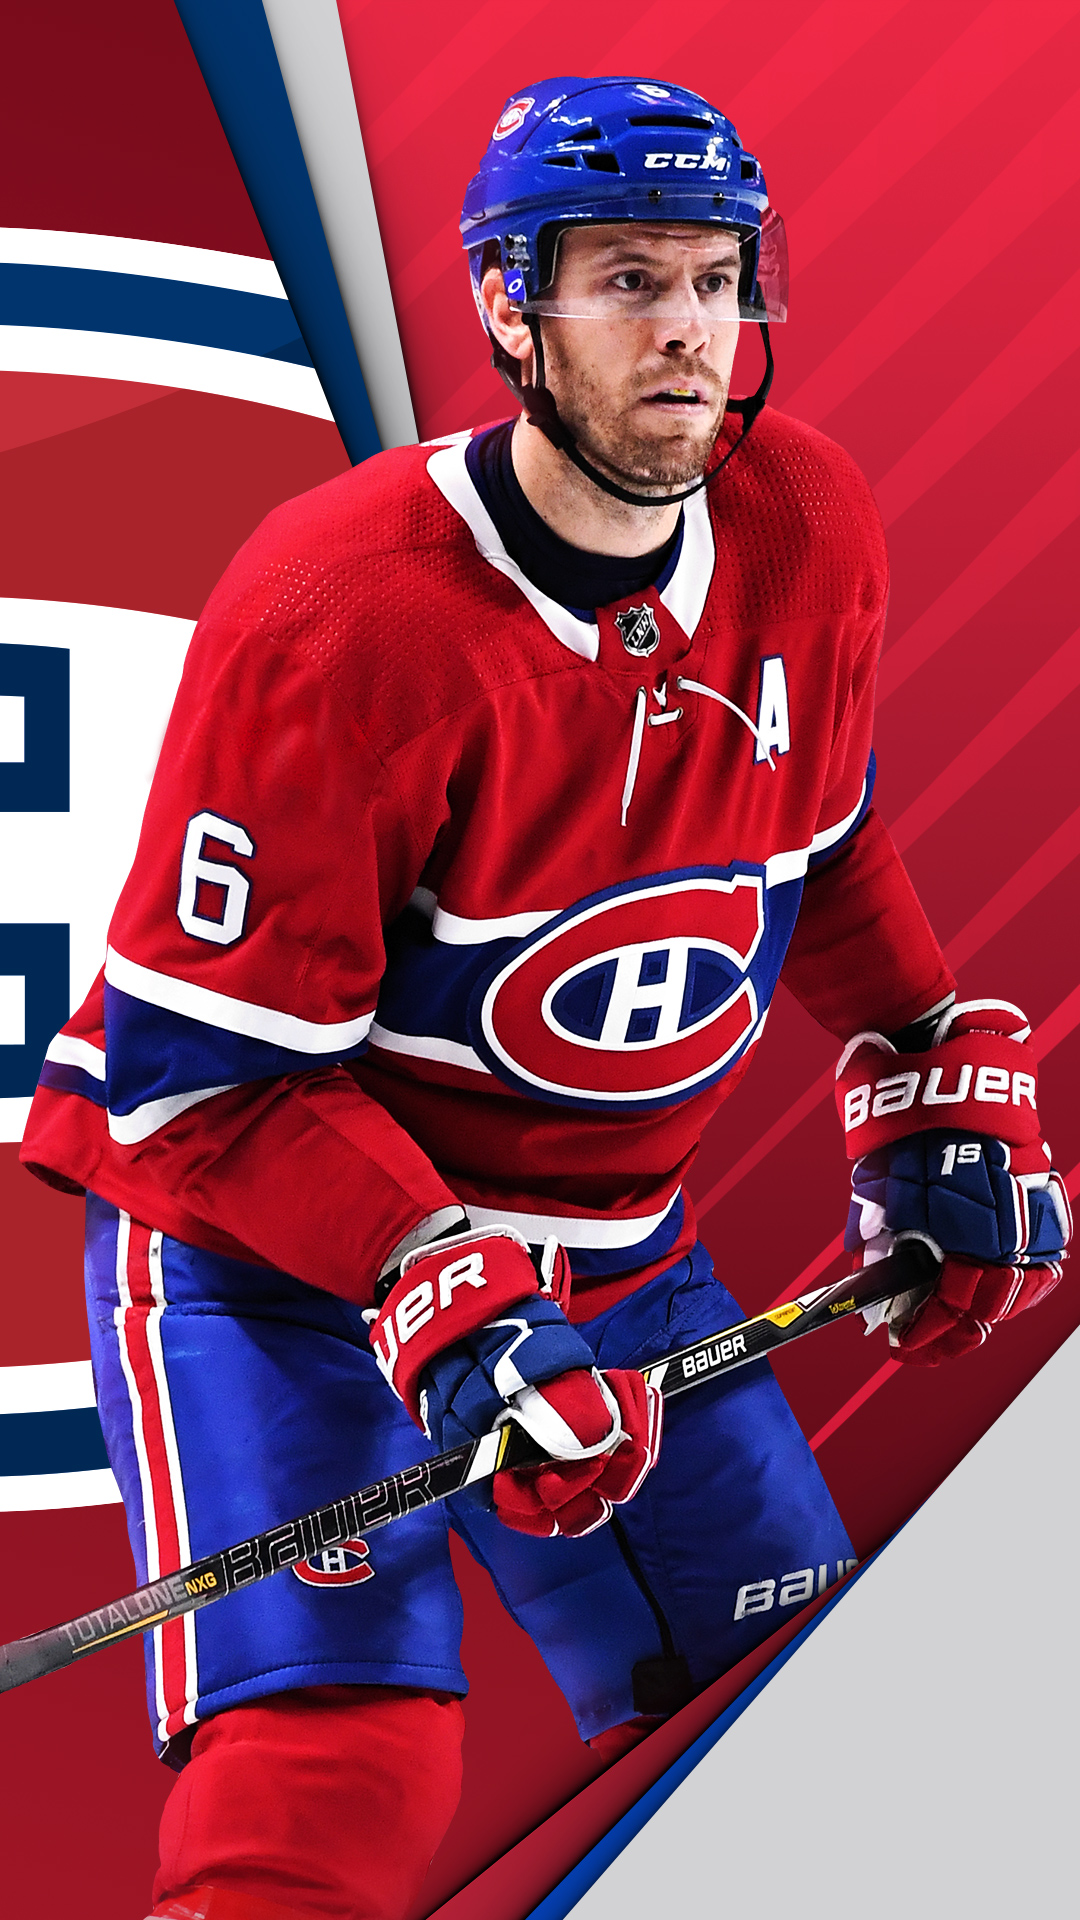 Wallpapers Montral Canadiens 1080x1920